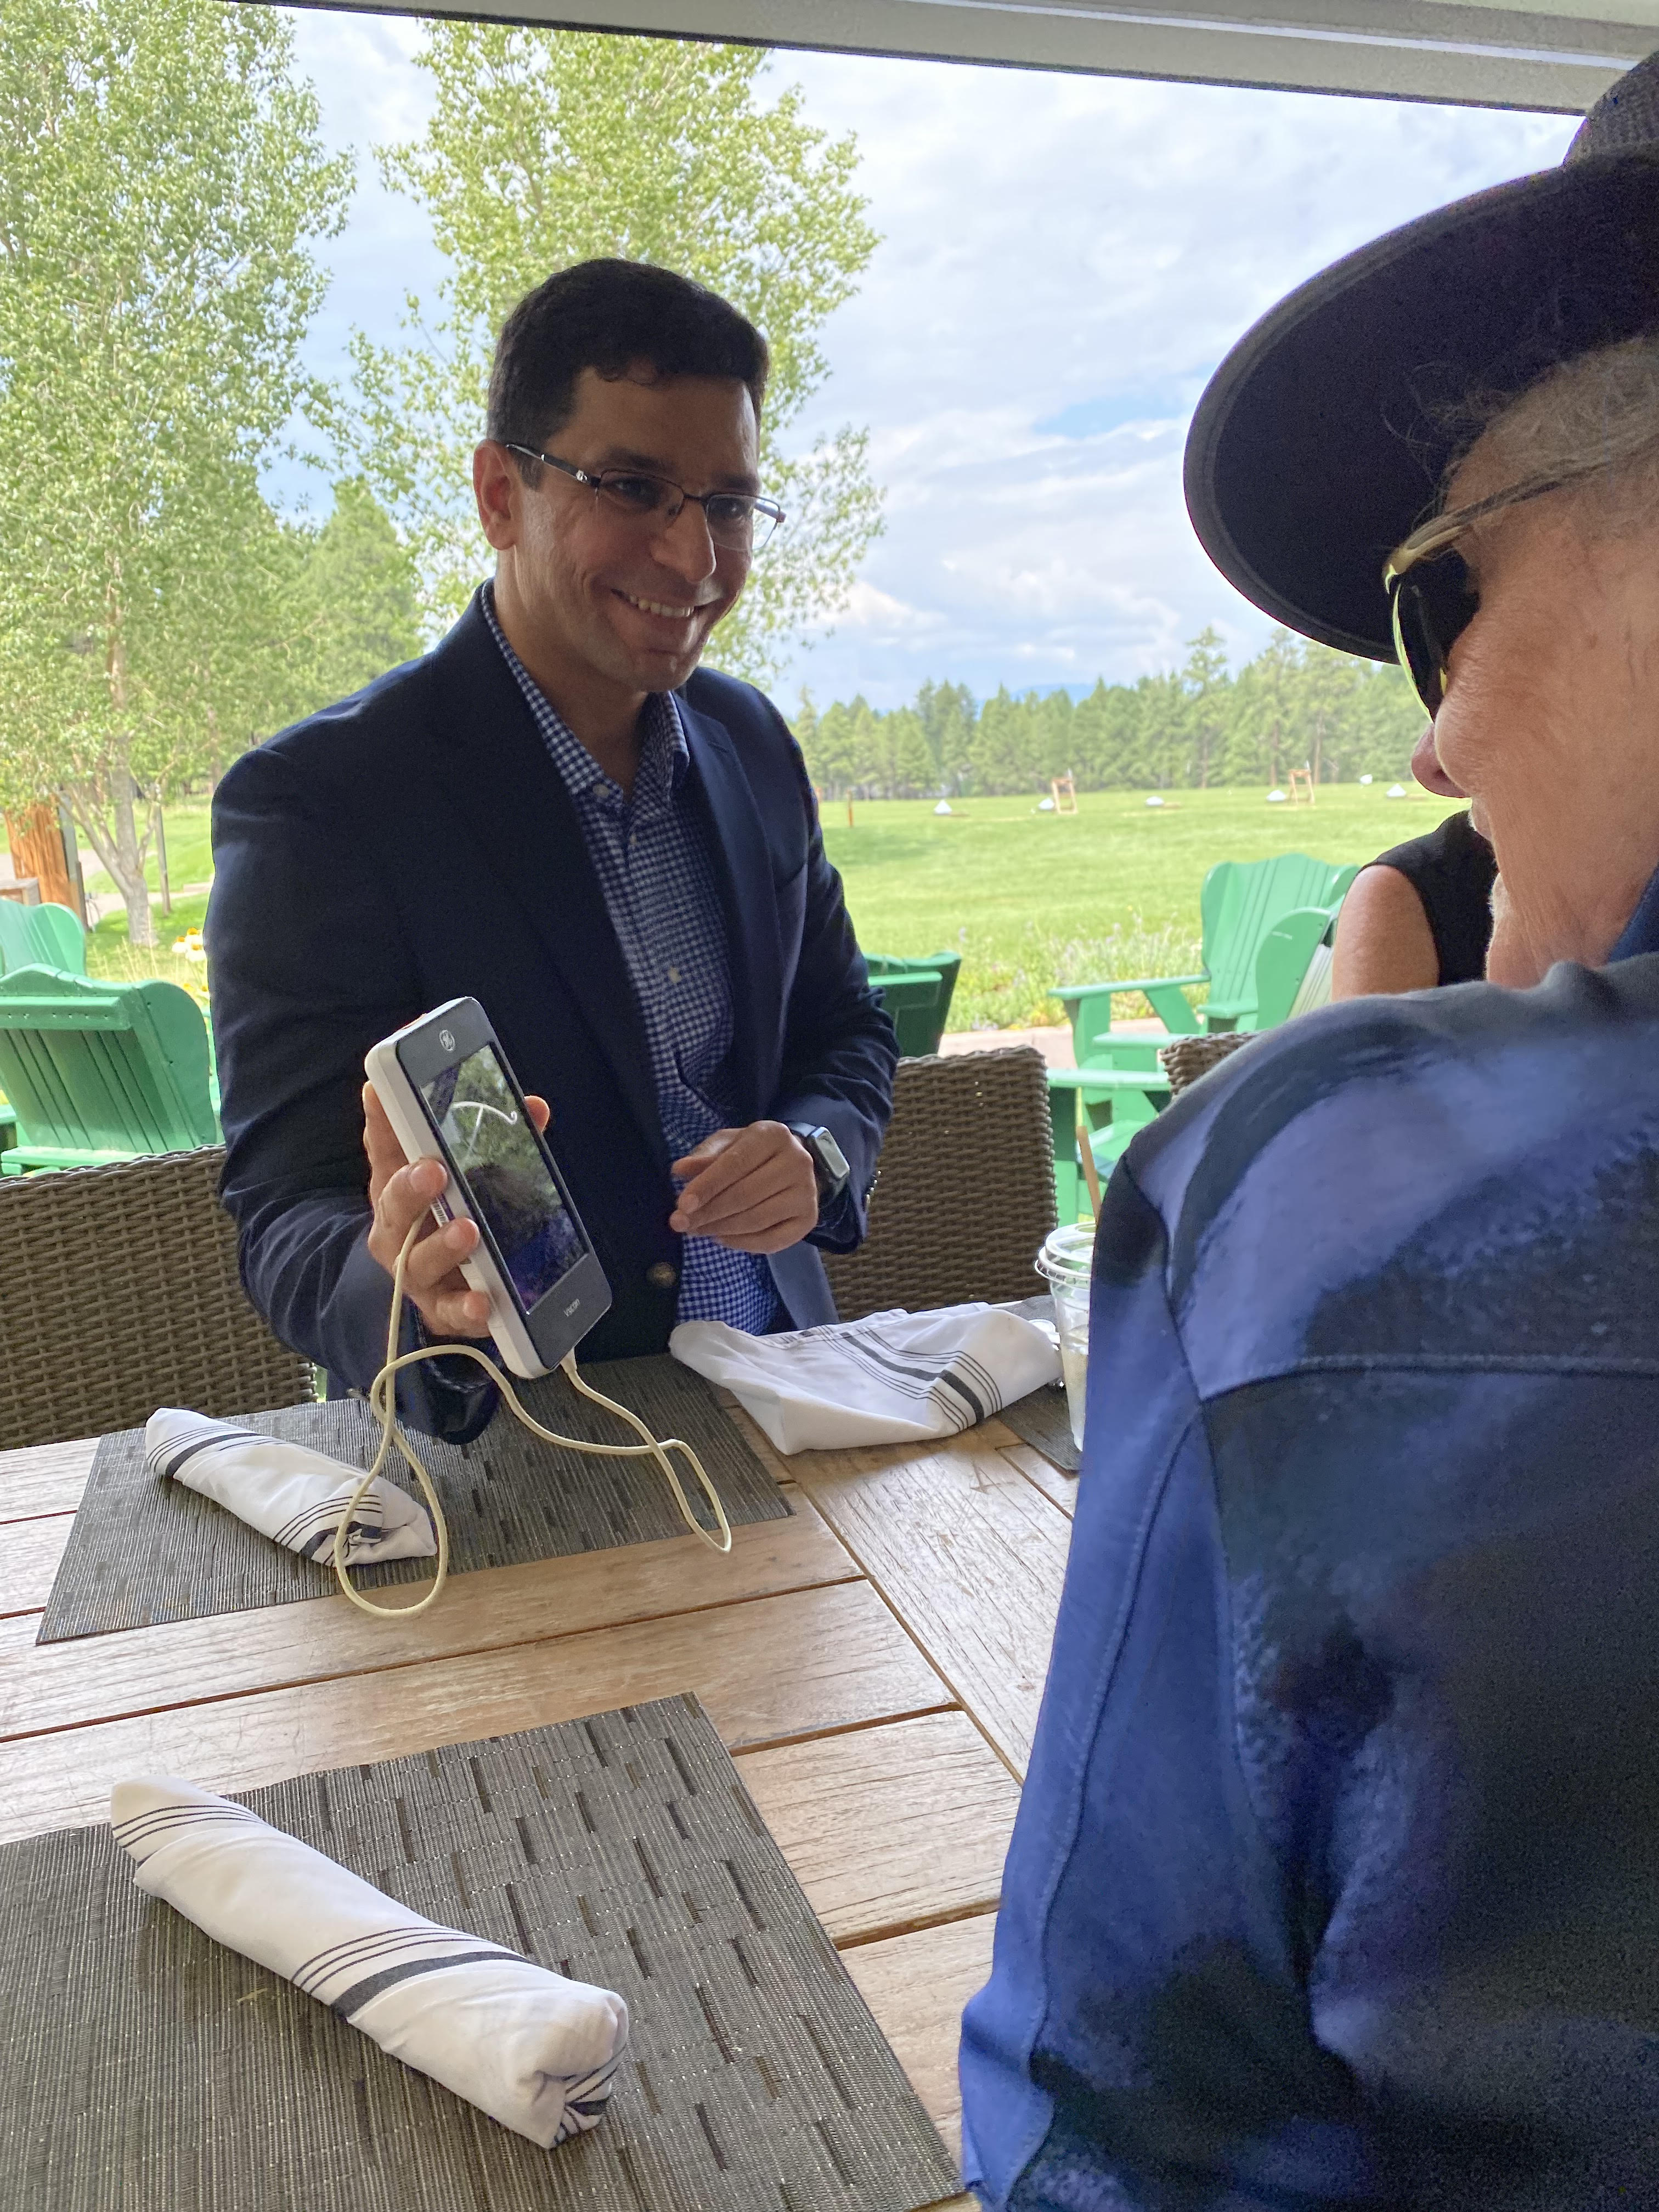 Dr. Saeed showing the POCUS device